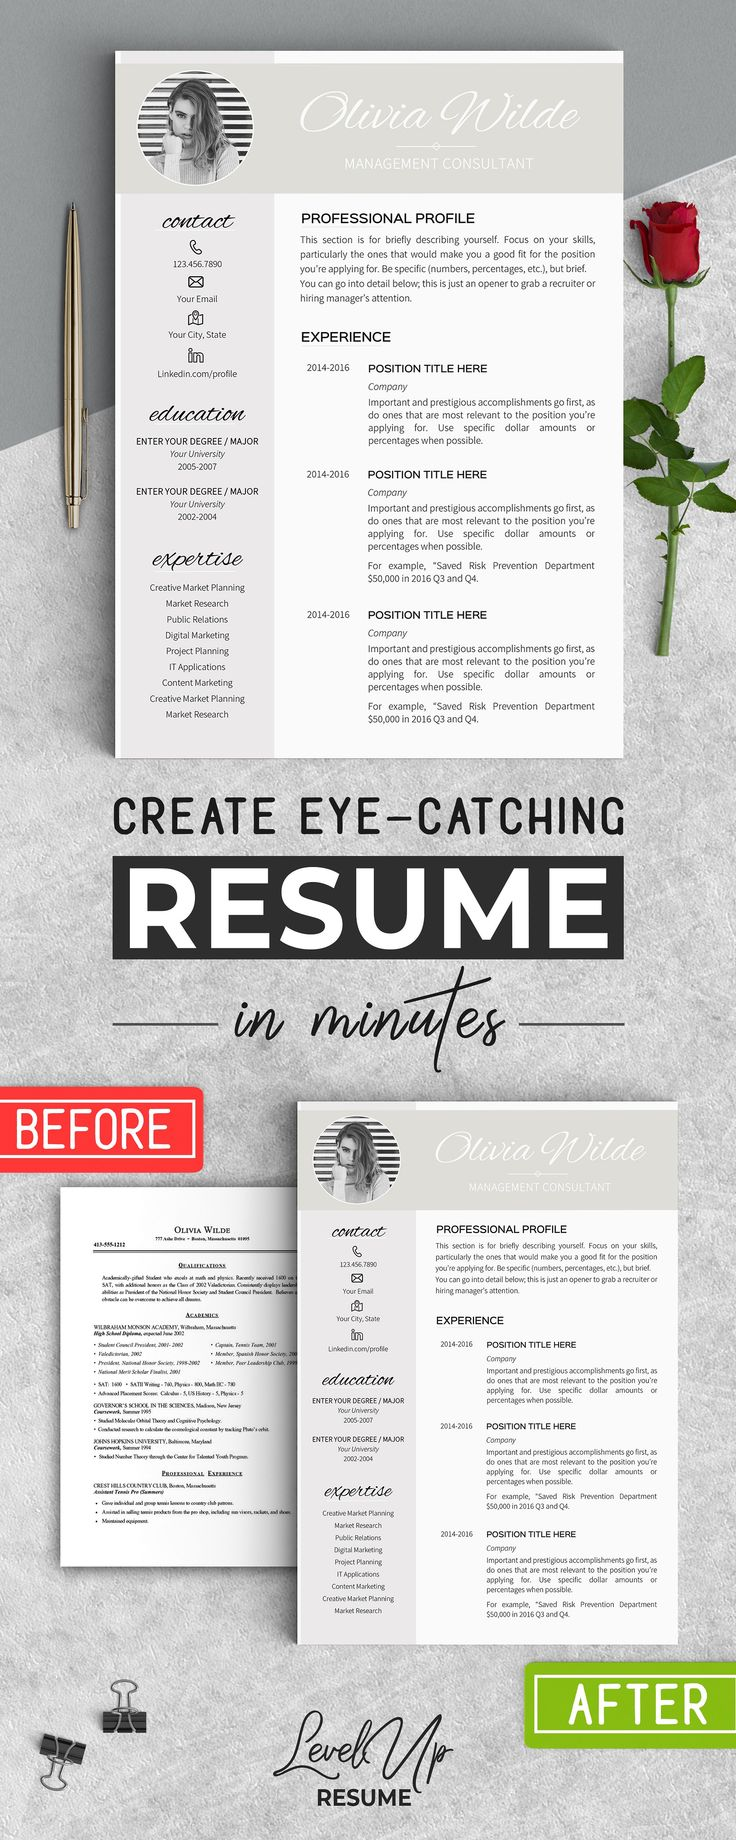 Resume Template for Word by LevelUpResume on @creativemarket #ad